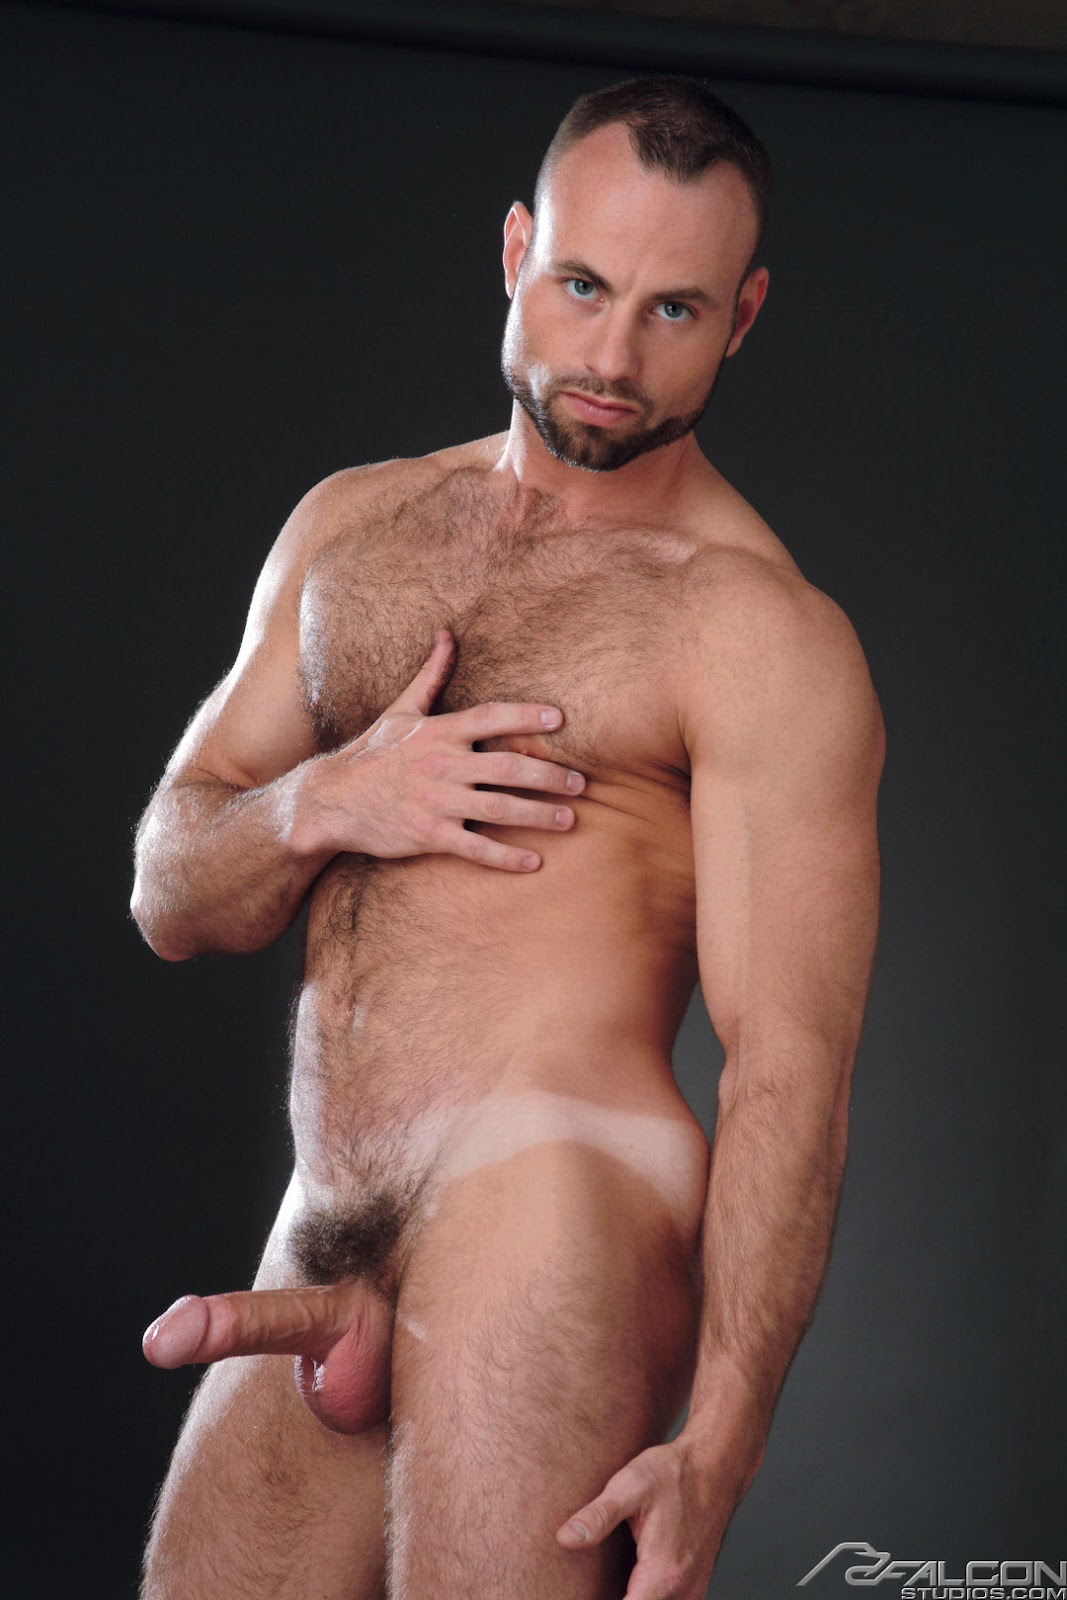 Colin oneal porn